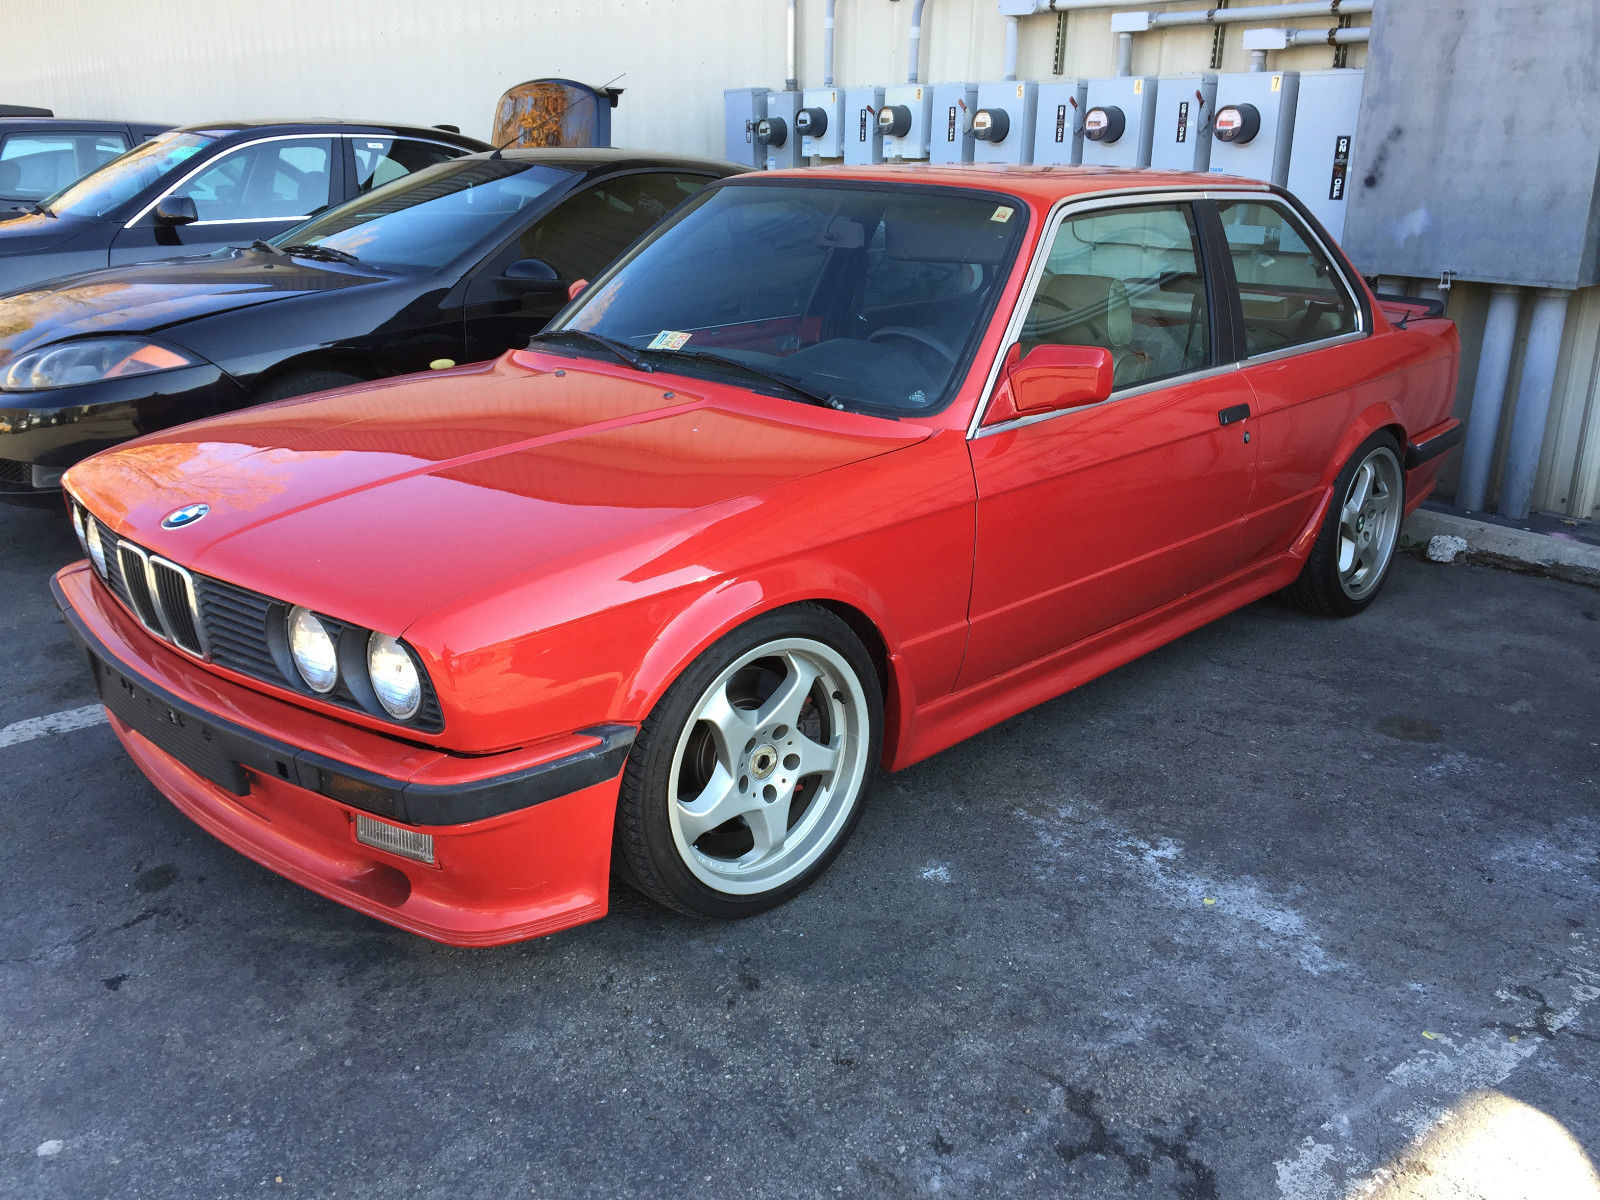 BMW : 3-Series 1986 bmw 325E E 30 stroker engine - Classic